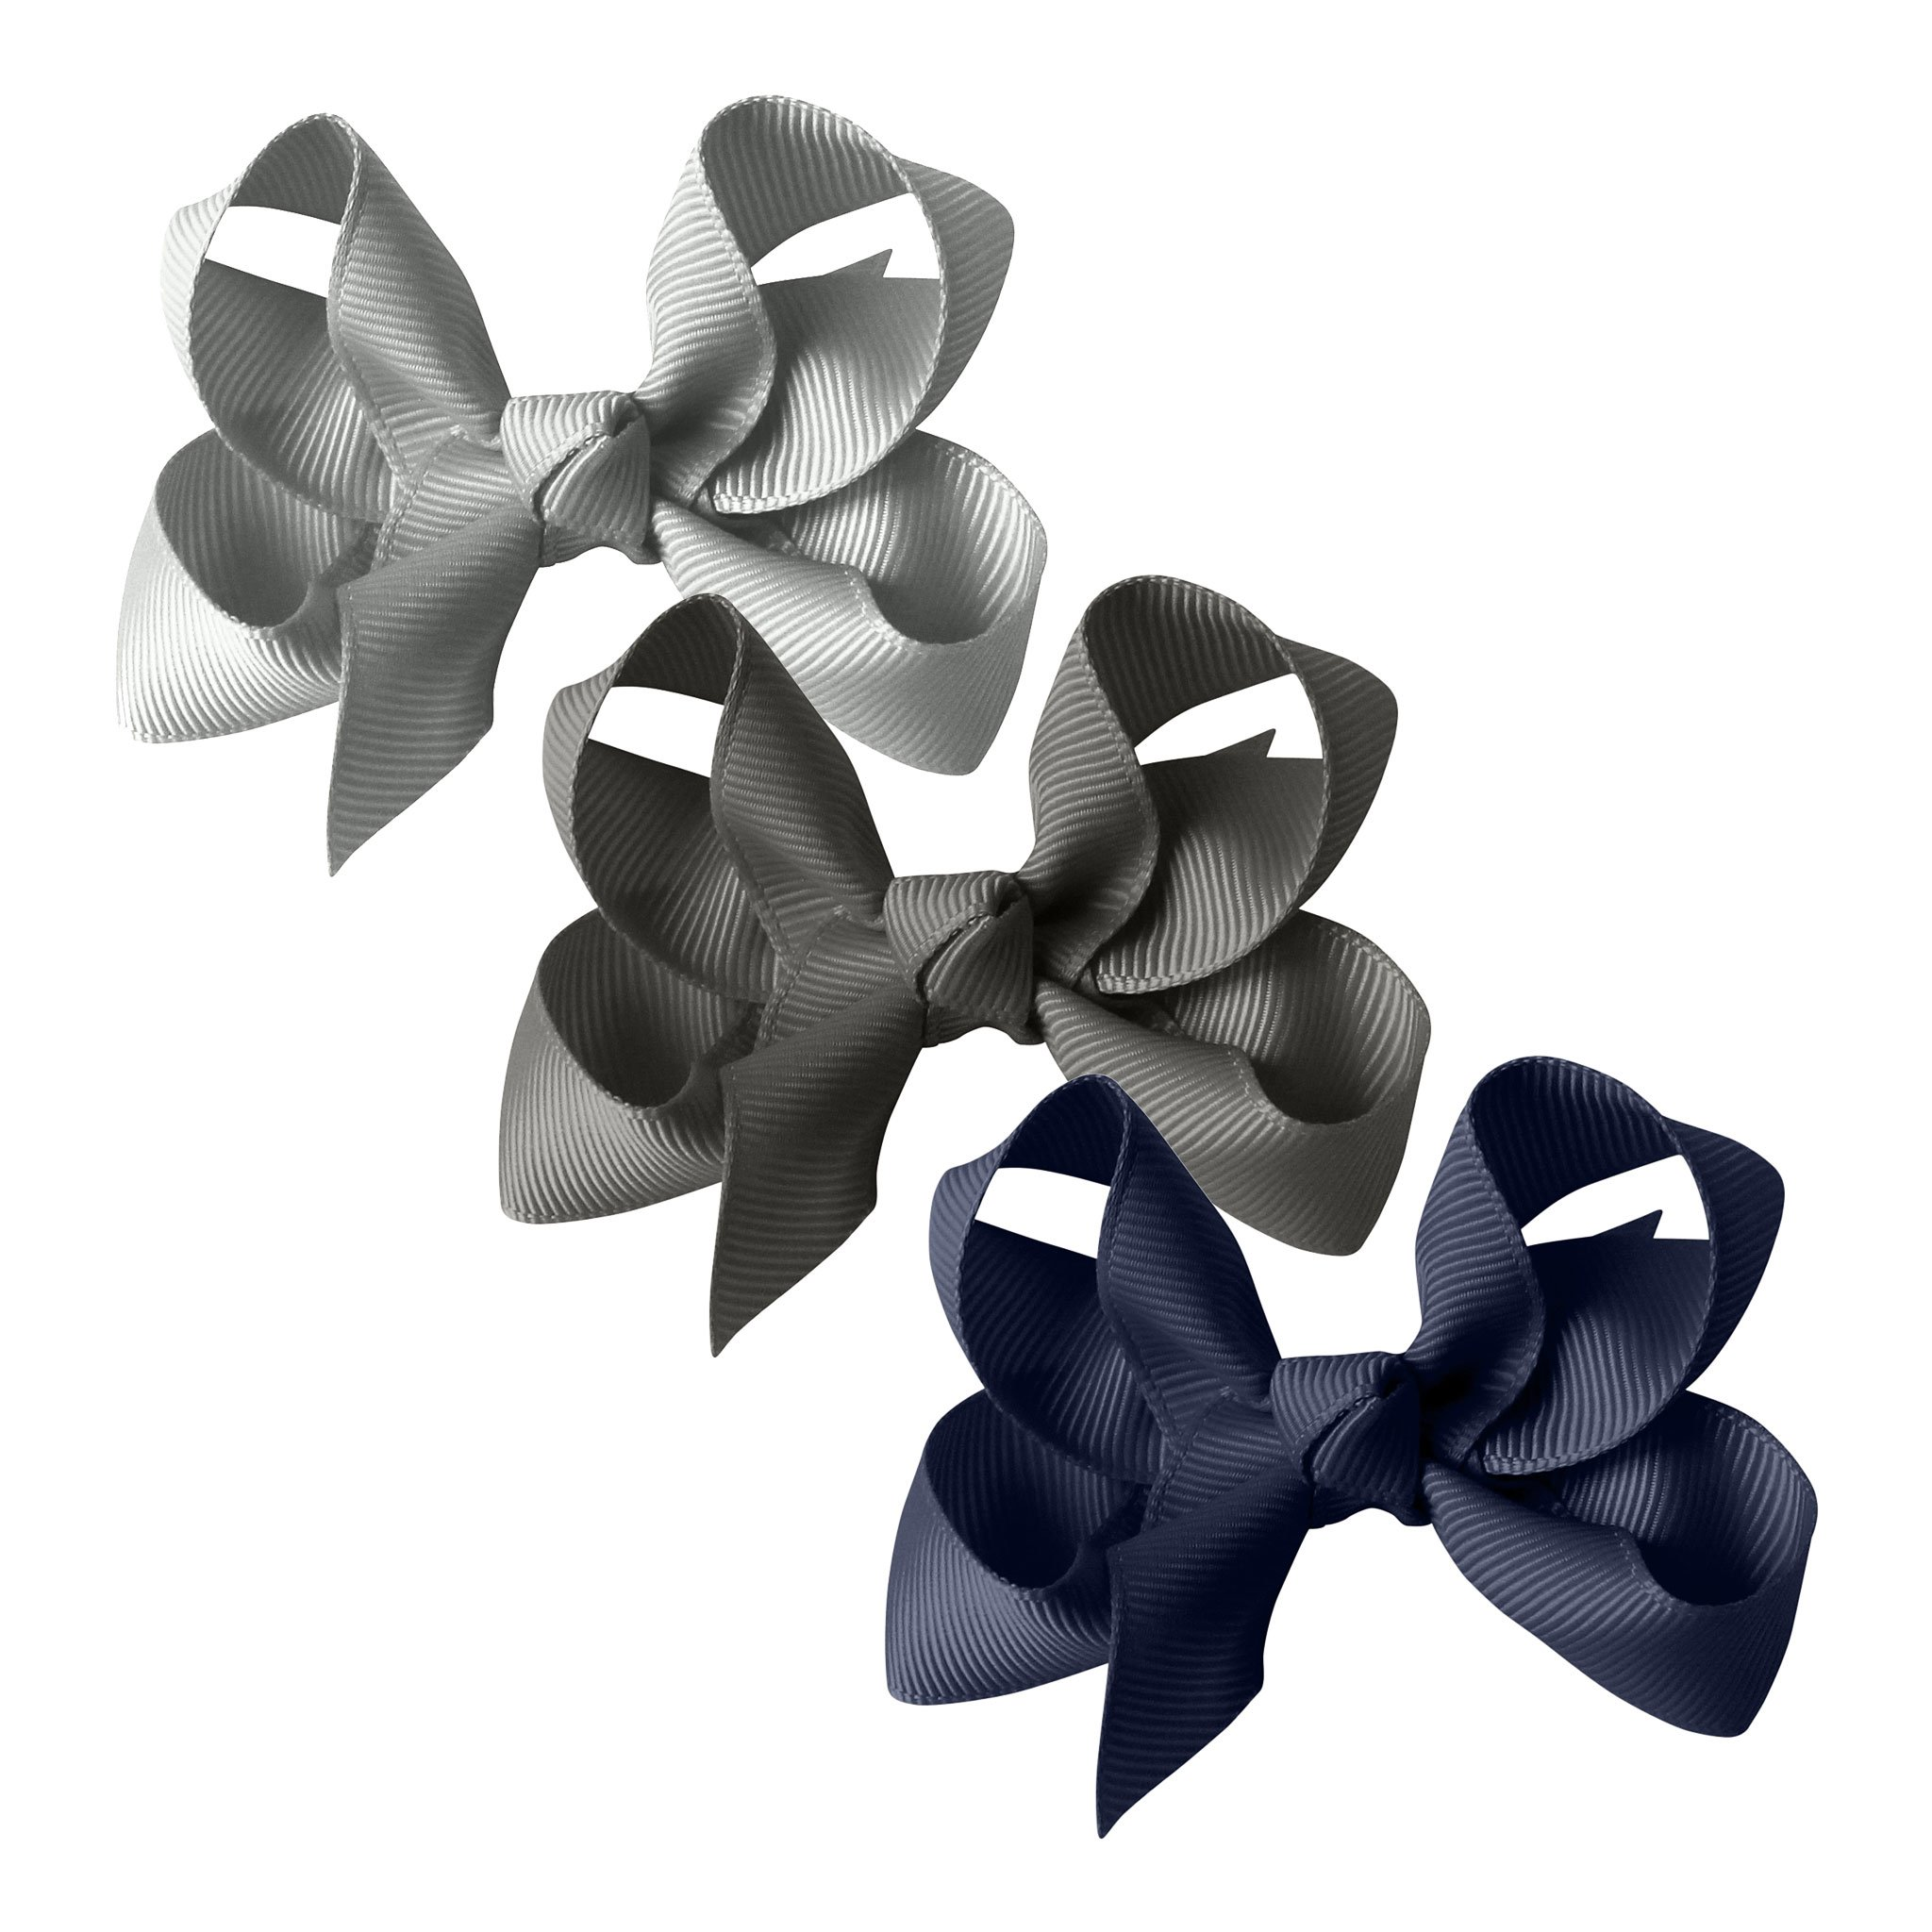 Image of Milledeux® gift set - Grosgrain Collection - 3 Medium boutique bows - grey/navy